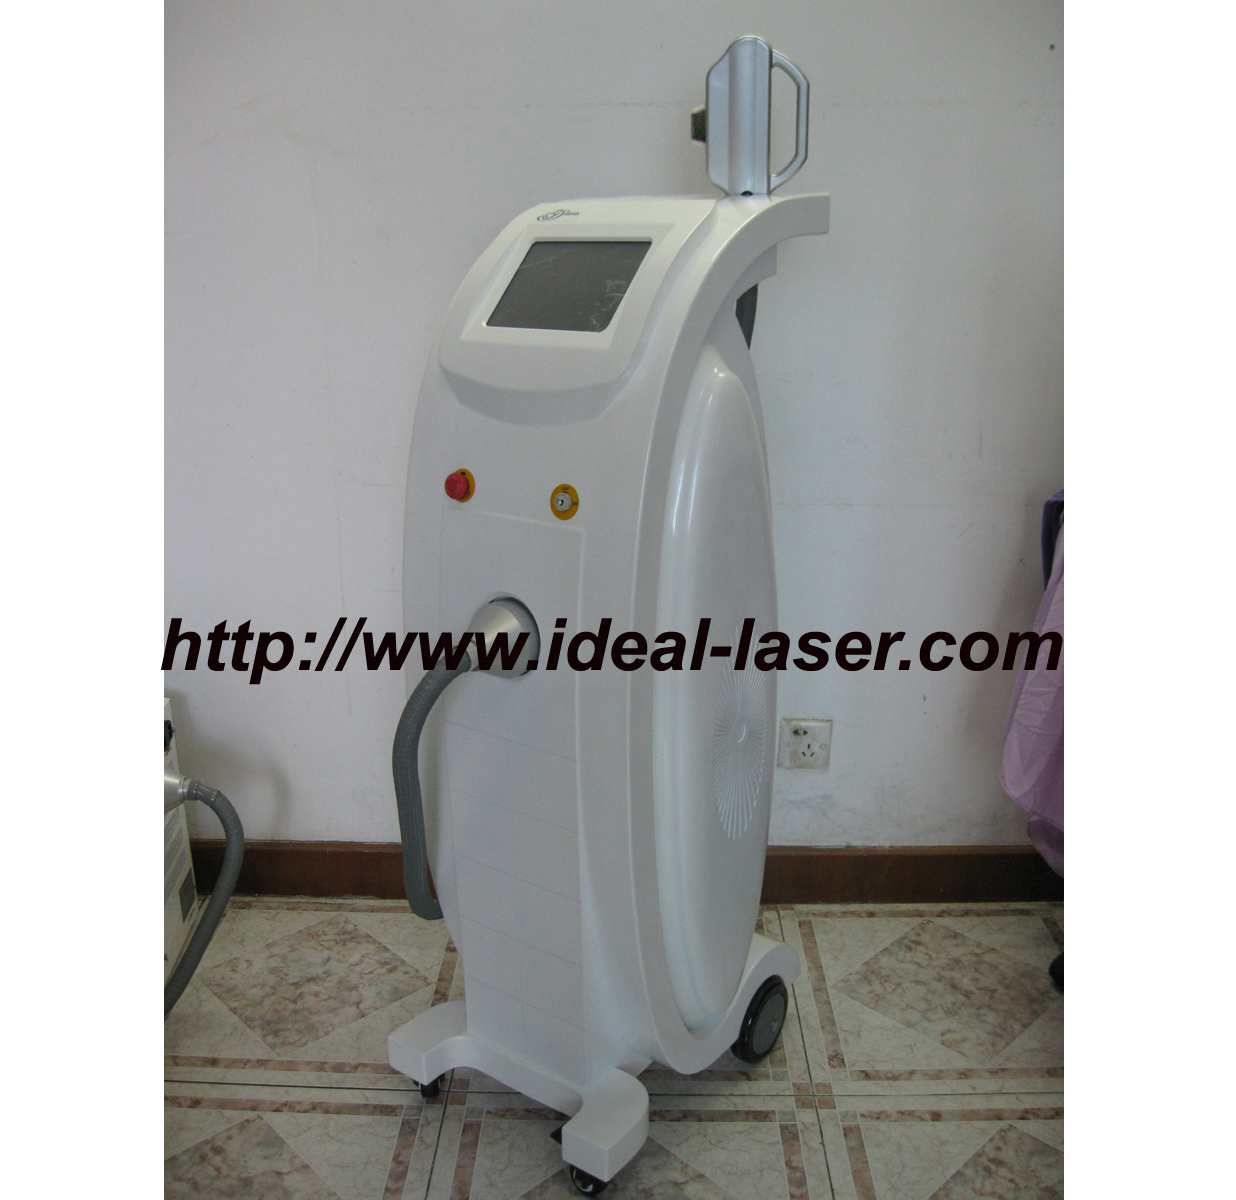 Elight laser with IPL+RF beauty machine for hair removal and skin rejuvenation